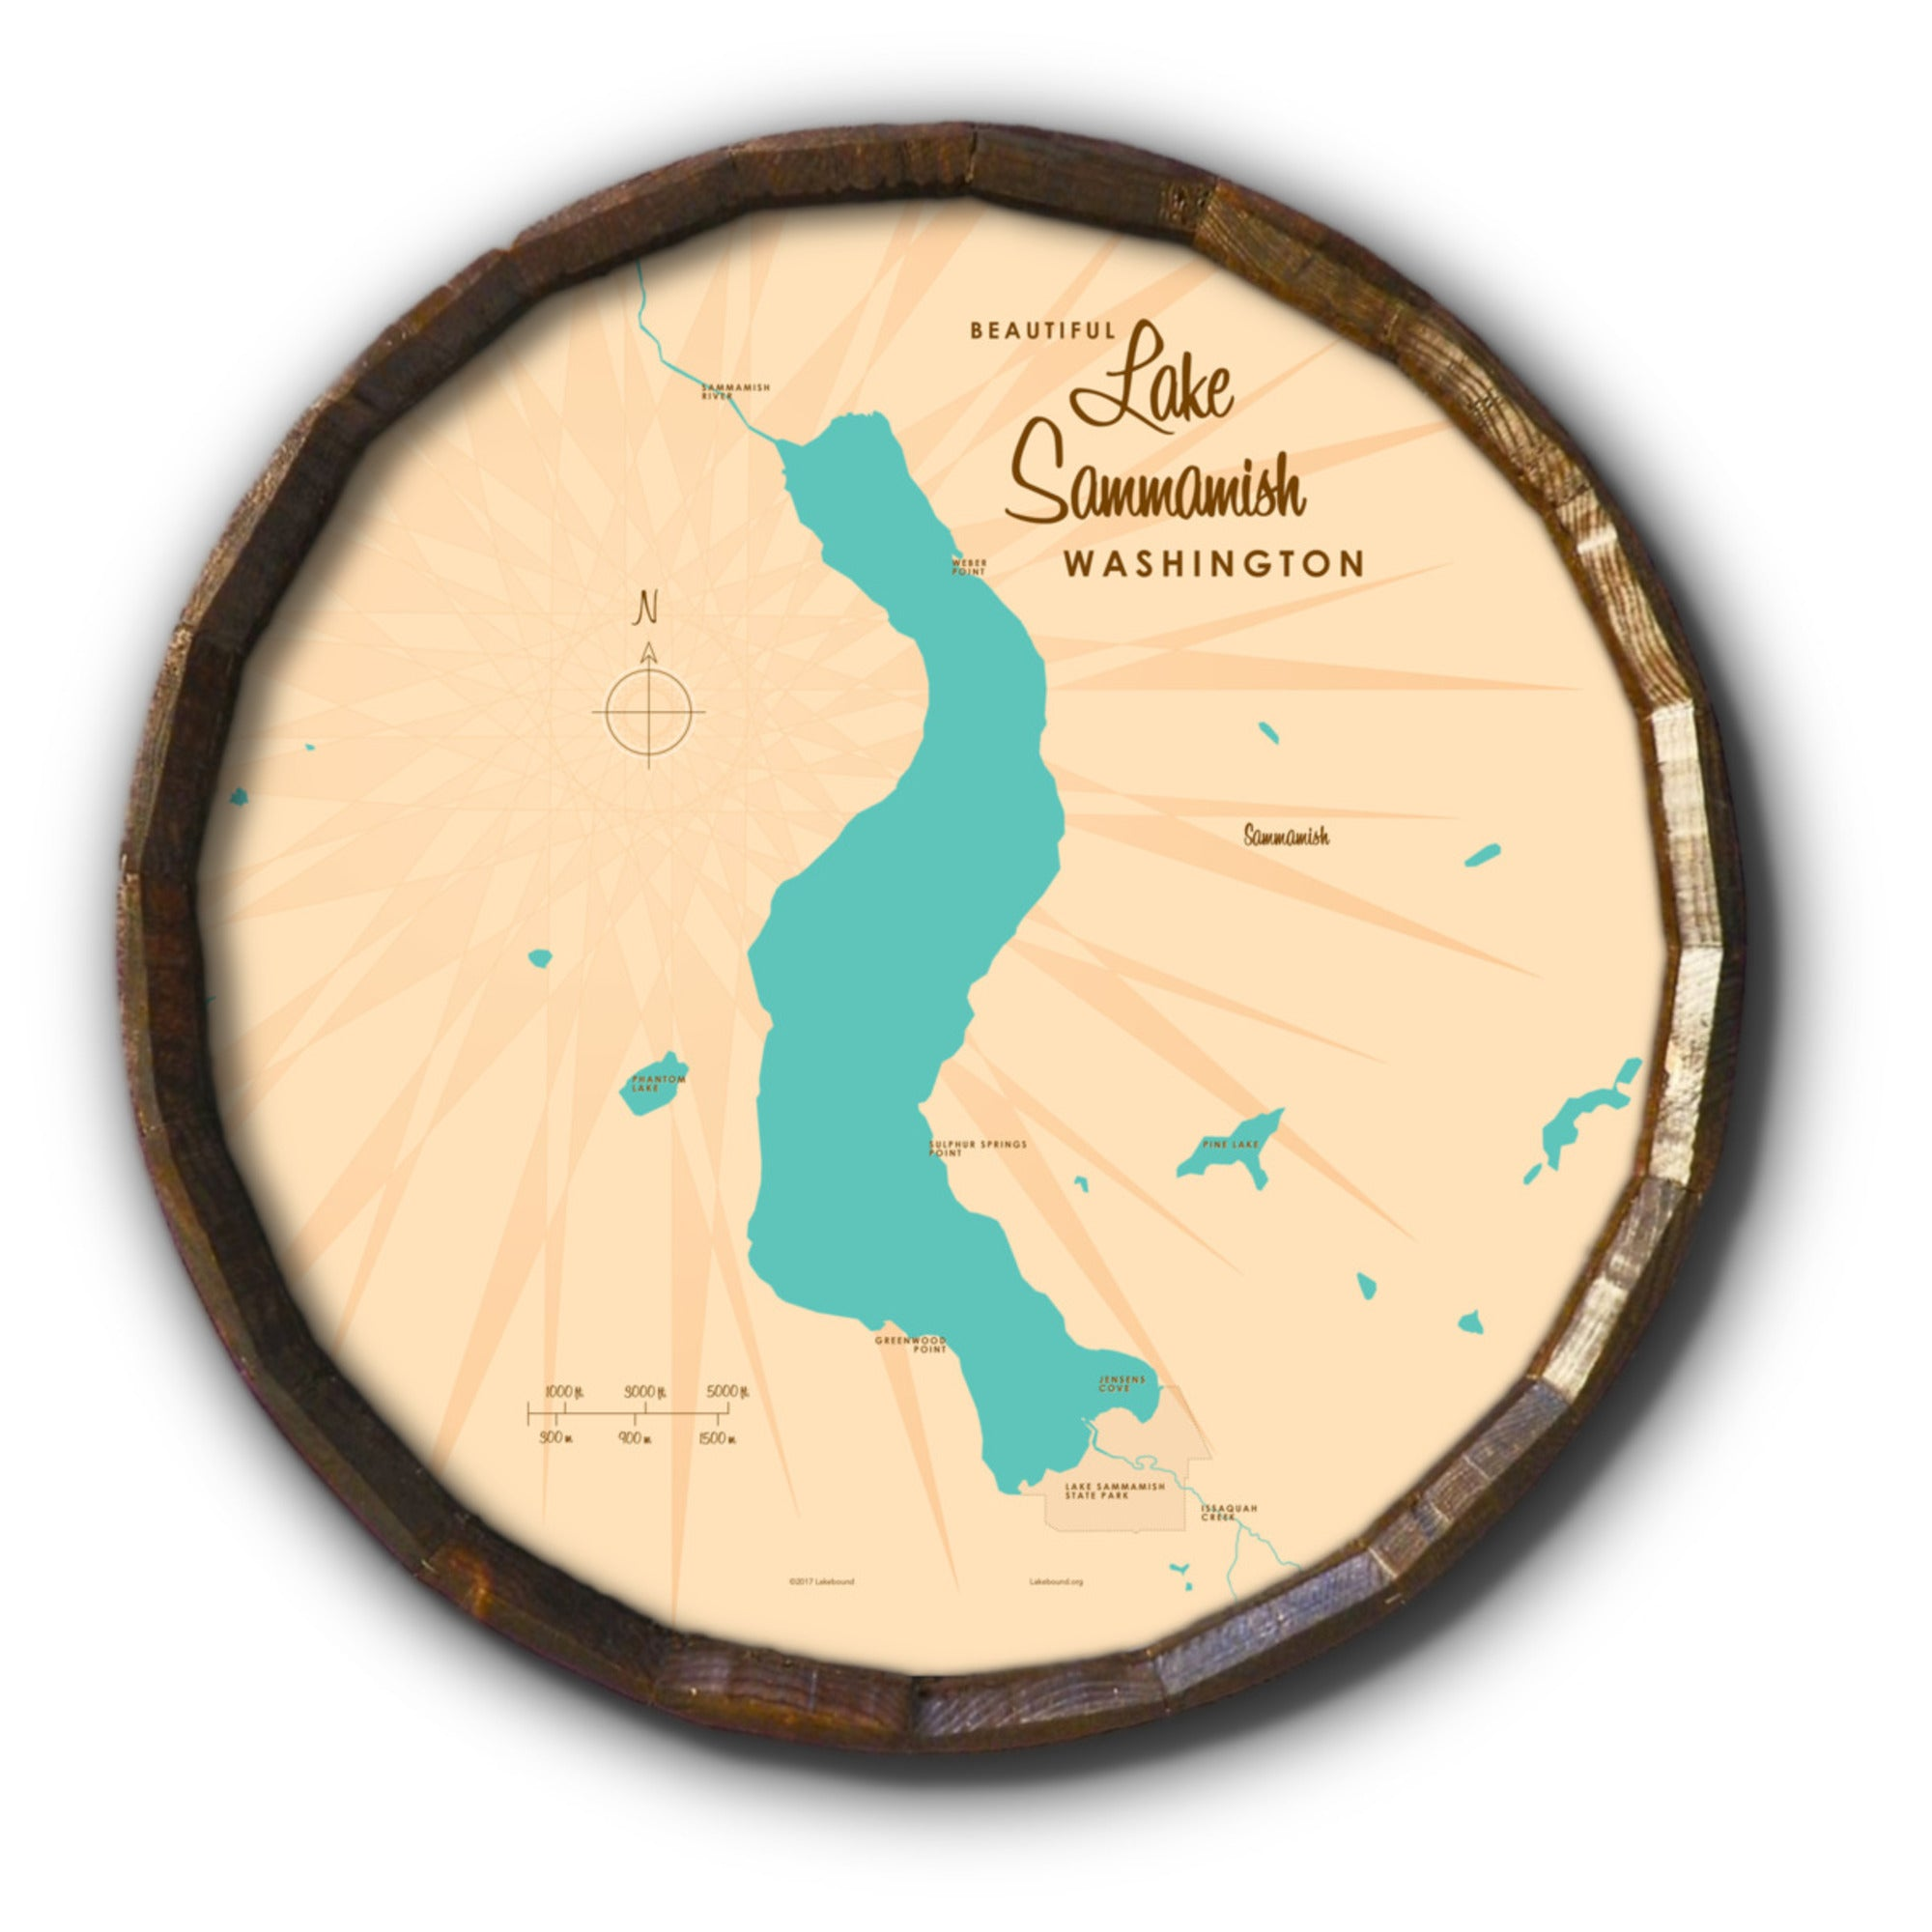 Lake Sammamish Washington, Barrel End Map Art